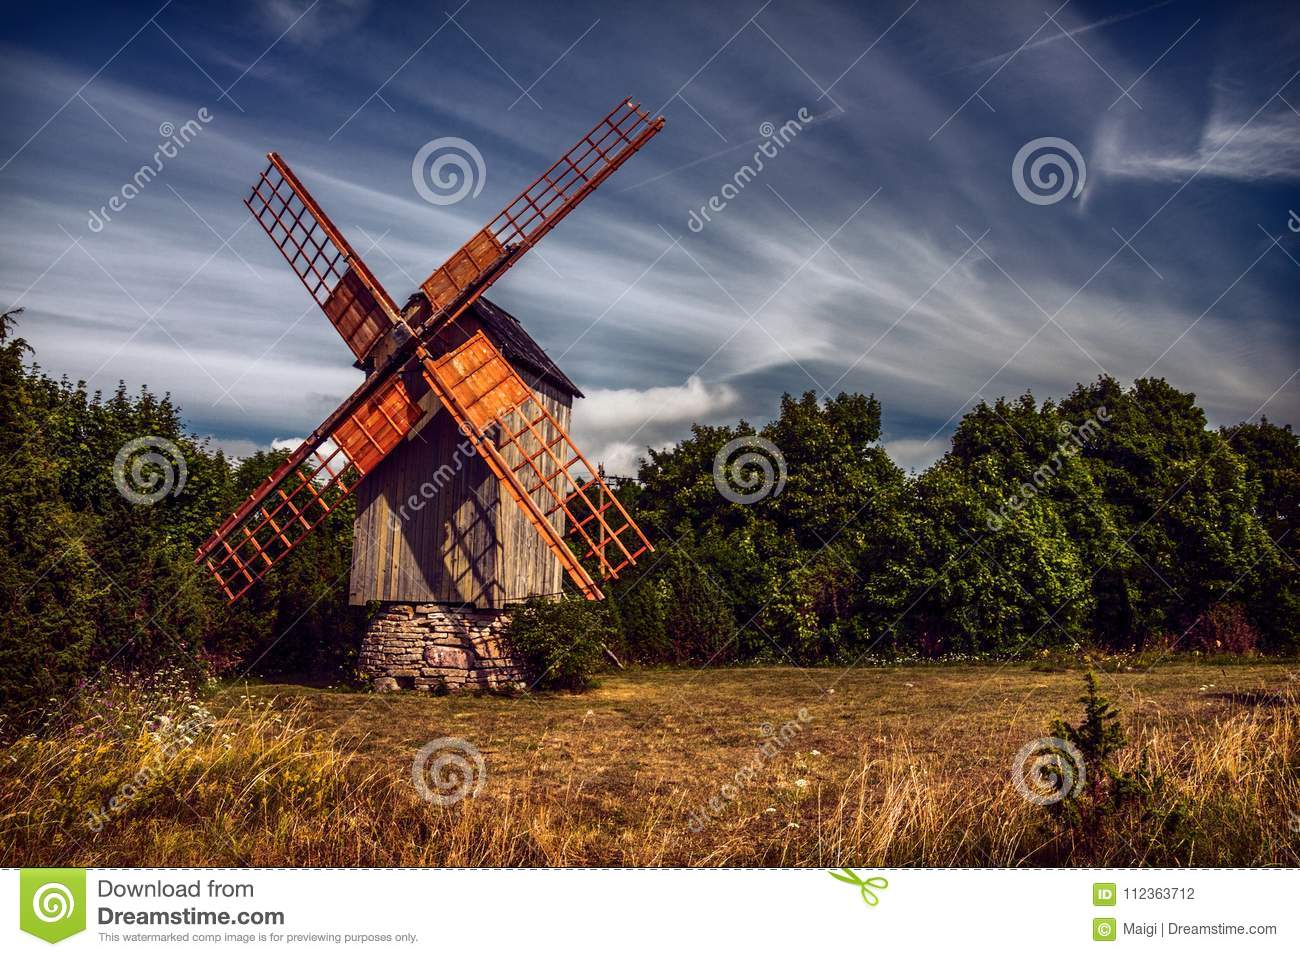 Download Koguva Windmill in Estonia stock photo. Image of forest - 112363712